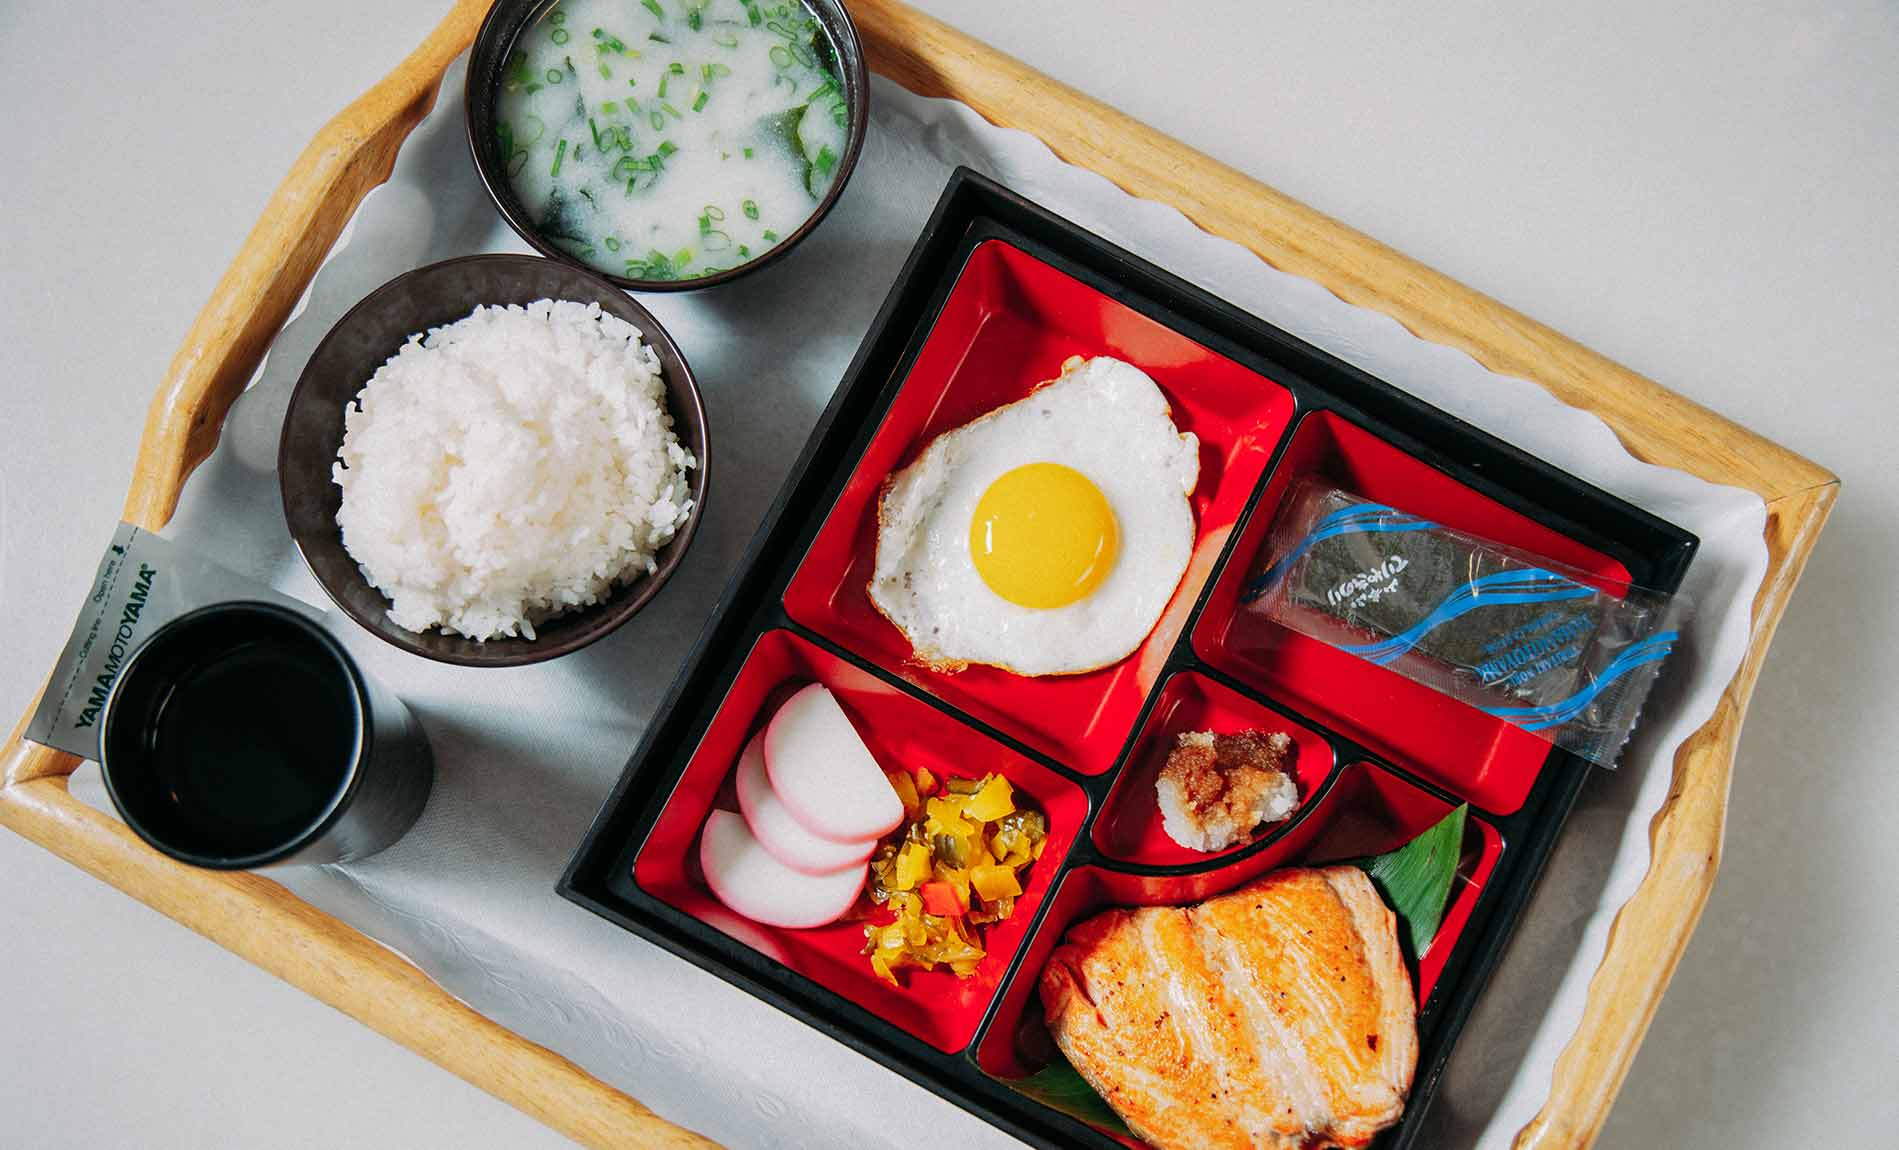 M.A.C. 24/7 Japanese Style Breakfast